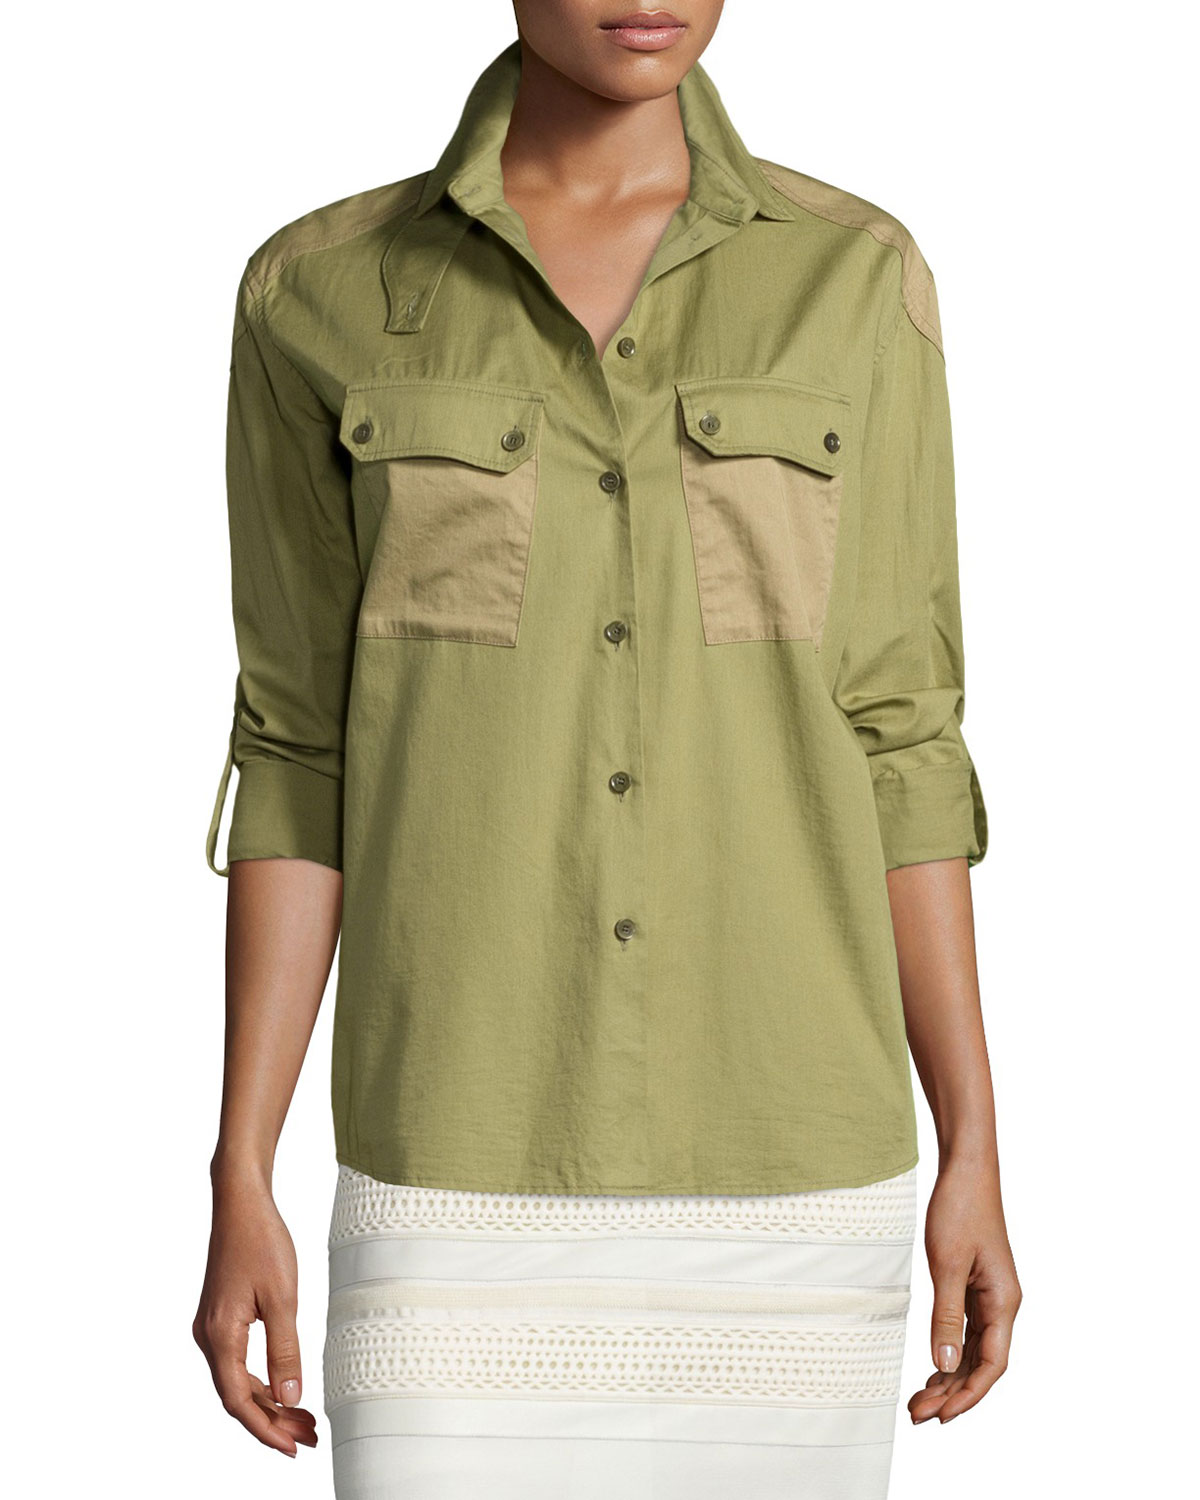 Two-Tone Patch-Pocket Camp Shirt, Olive